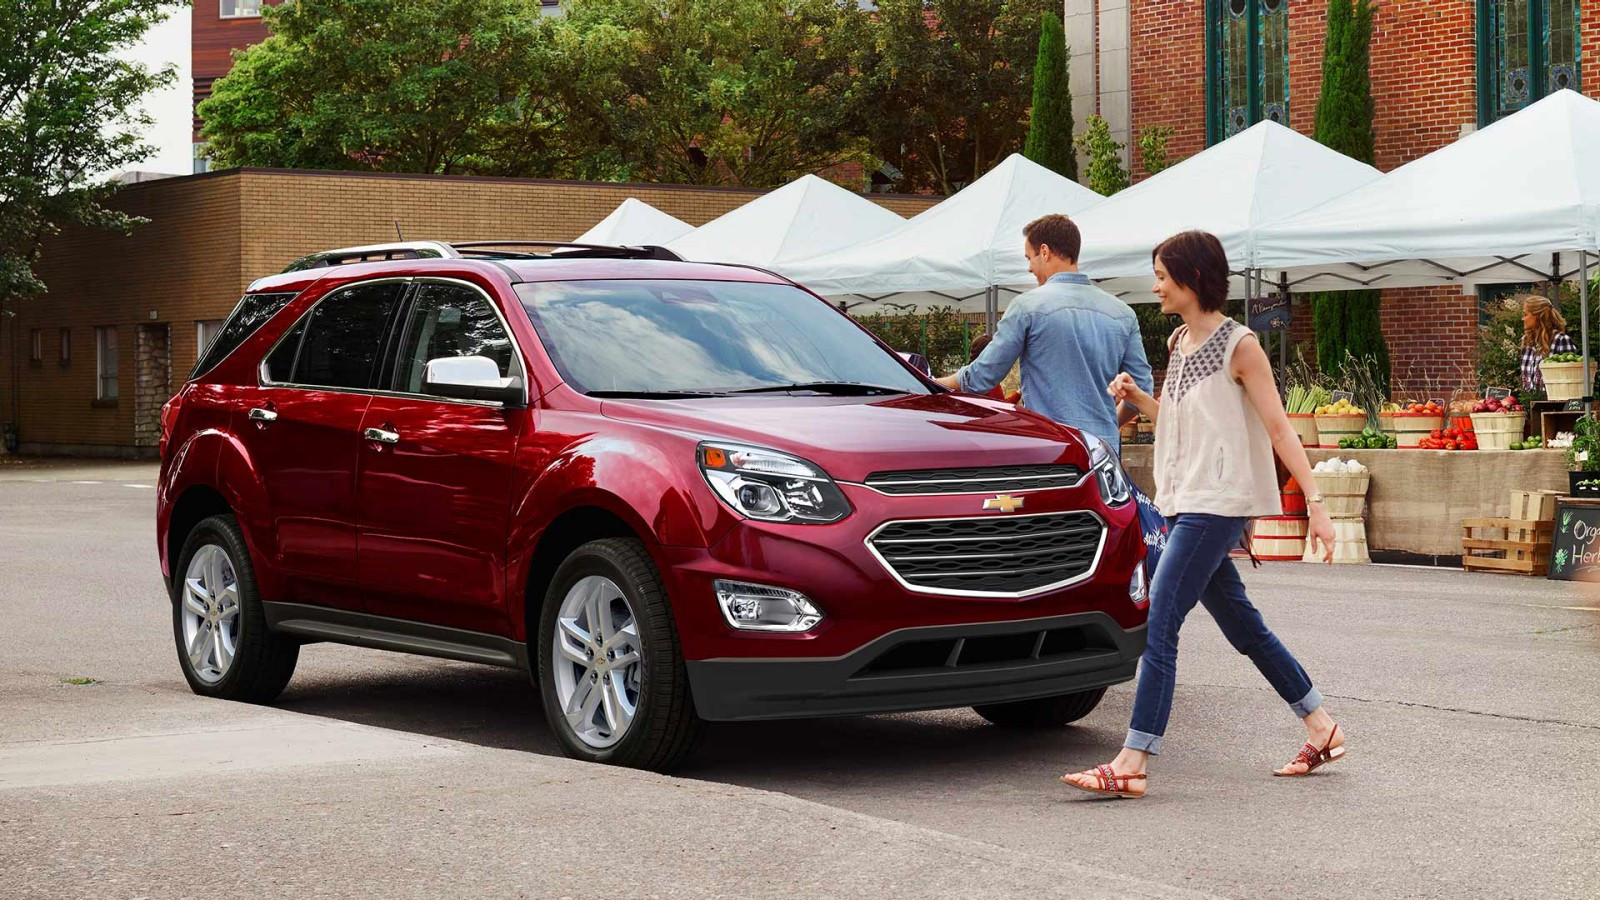 2017 Chevrolet Equinox for Sale in Chantilly, VA